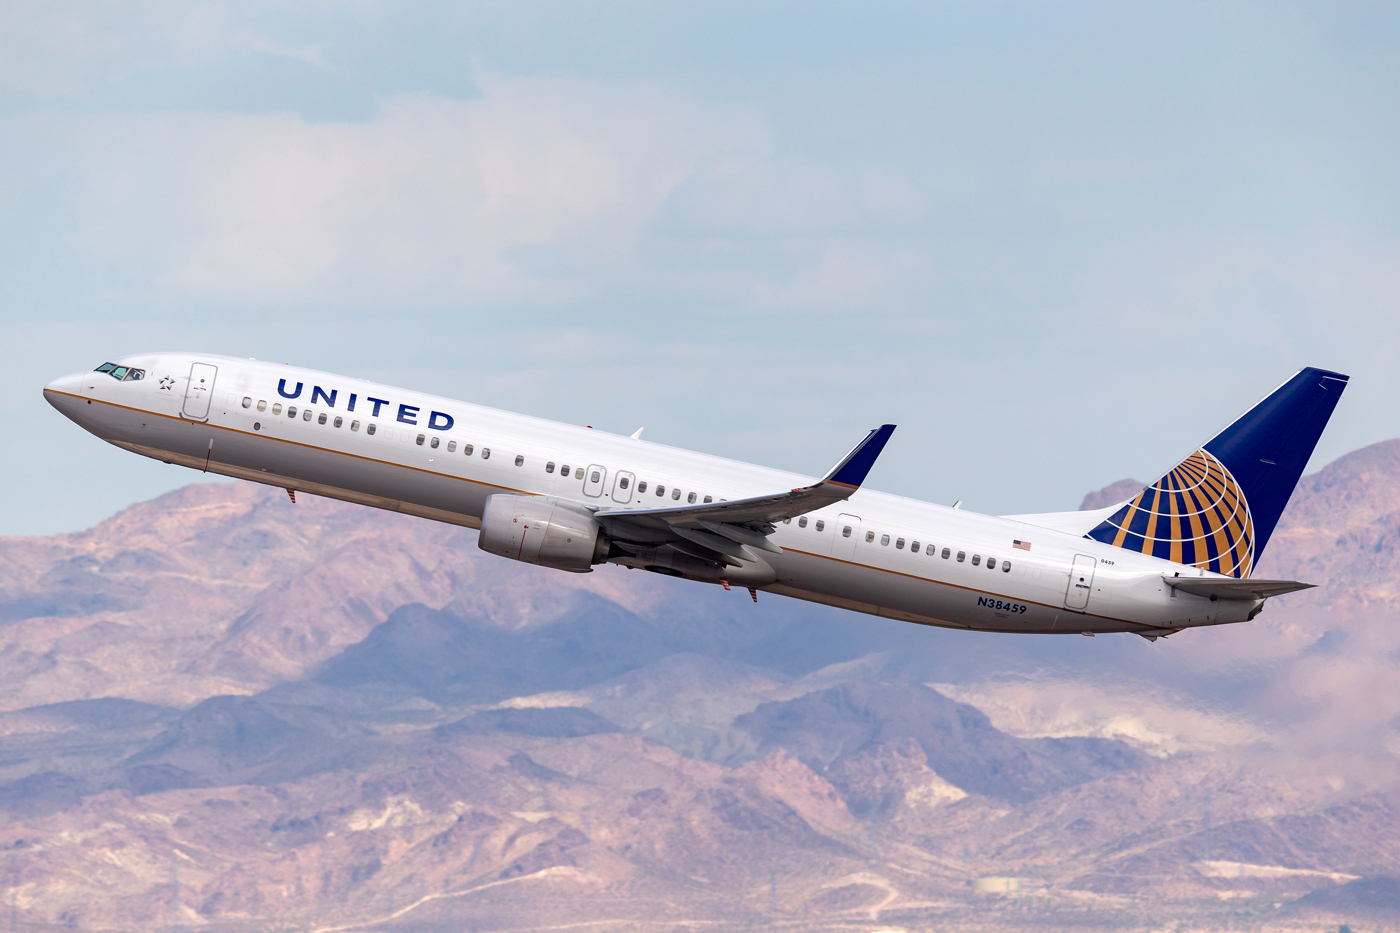 United Airlines UAL stock news and analysis